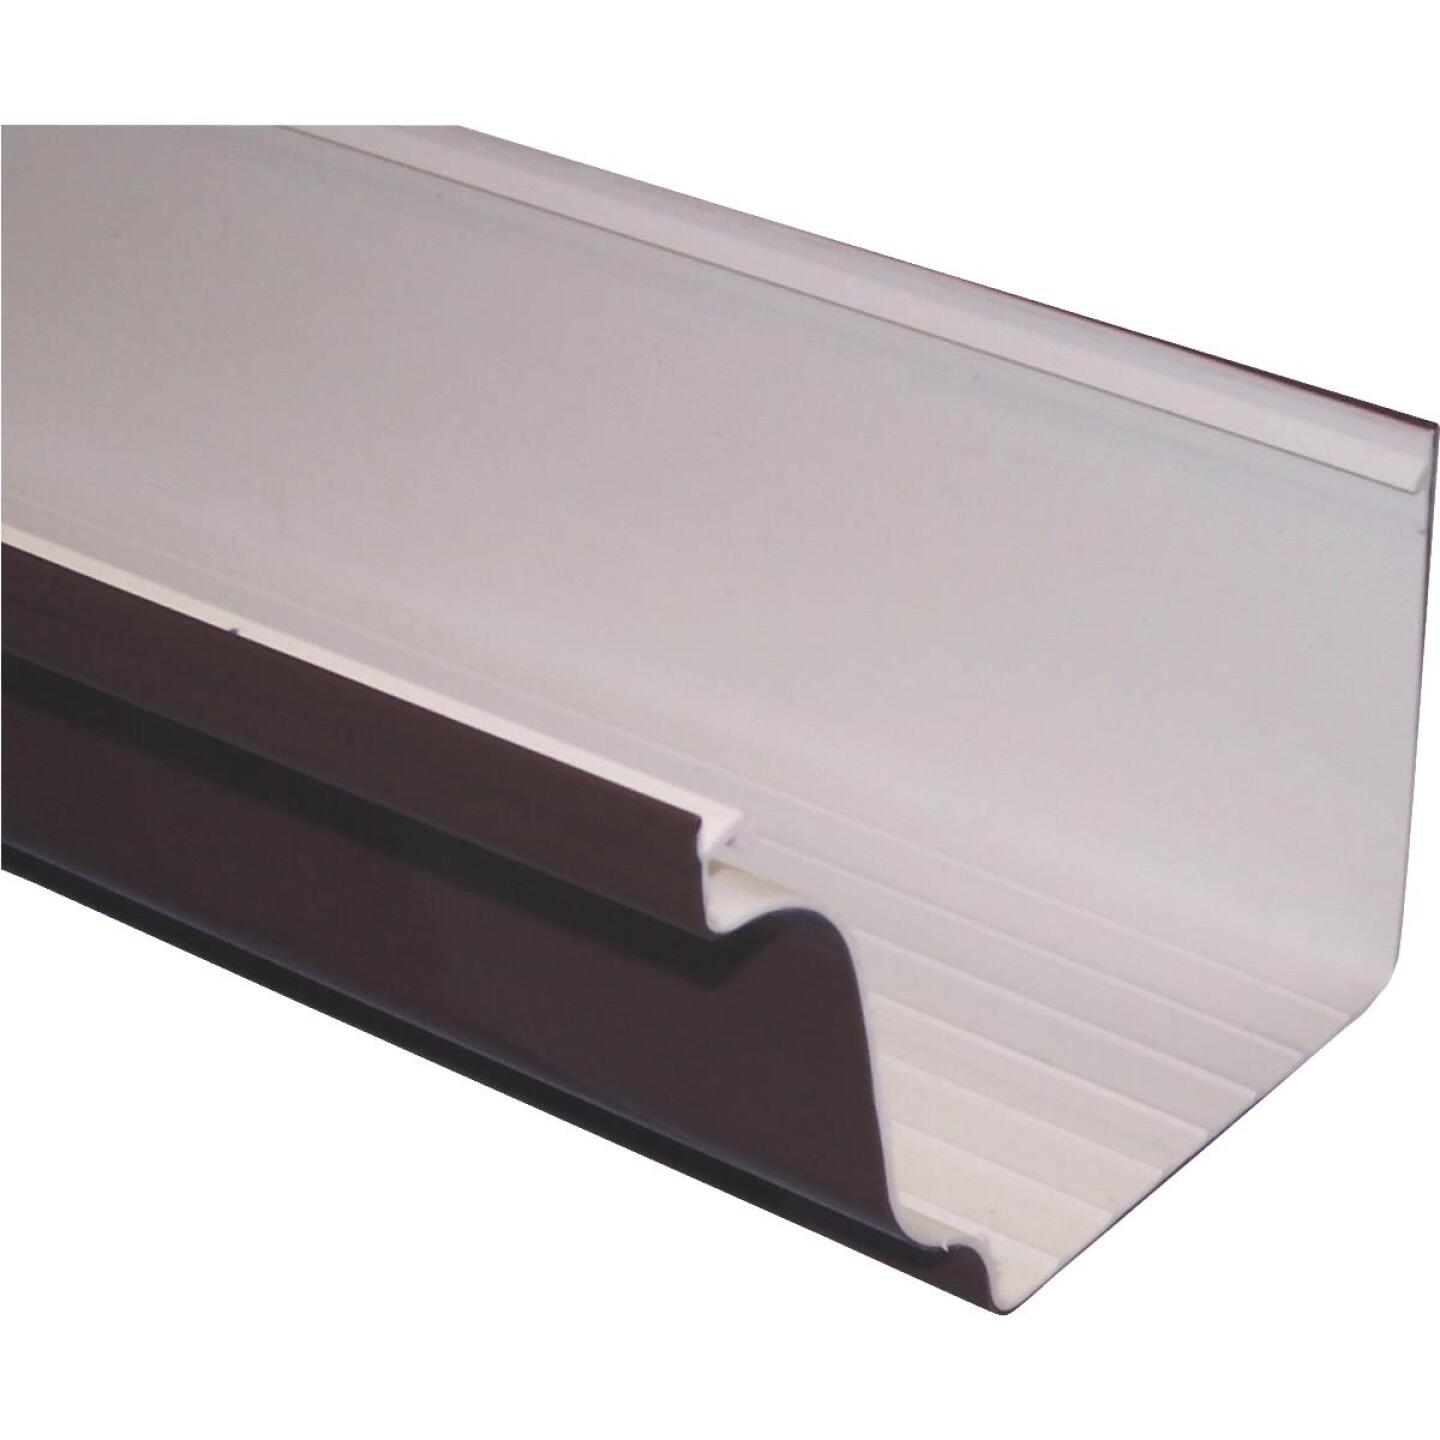 Repla K 5 In. x 10 Ft. Brown Vinyl Gutter Image 1